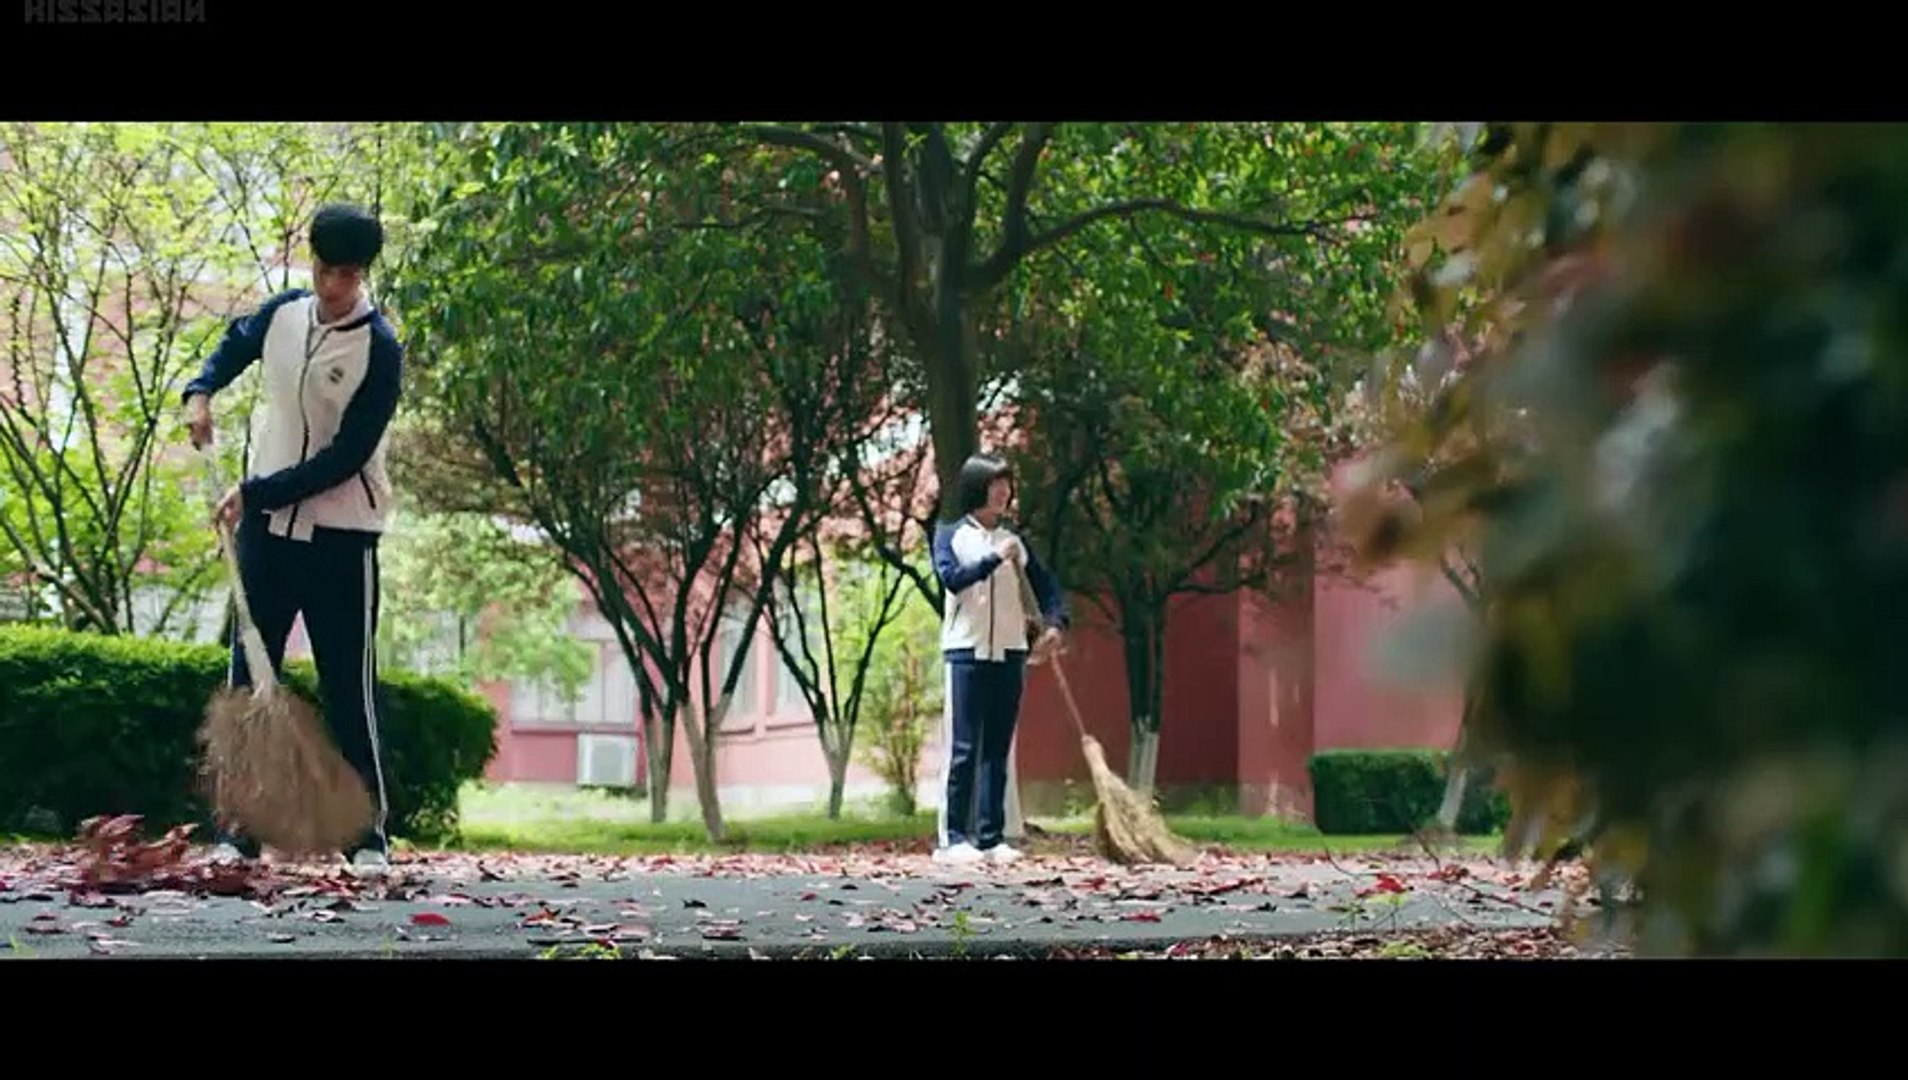 A Love So Beautiful Ep 1 - Watch A Love So Beautiful Ep 1 English sub online in high quality